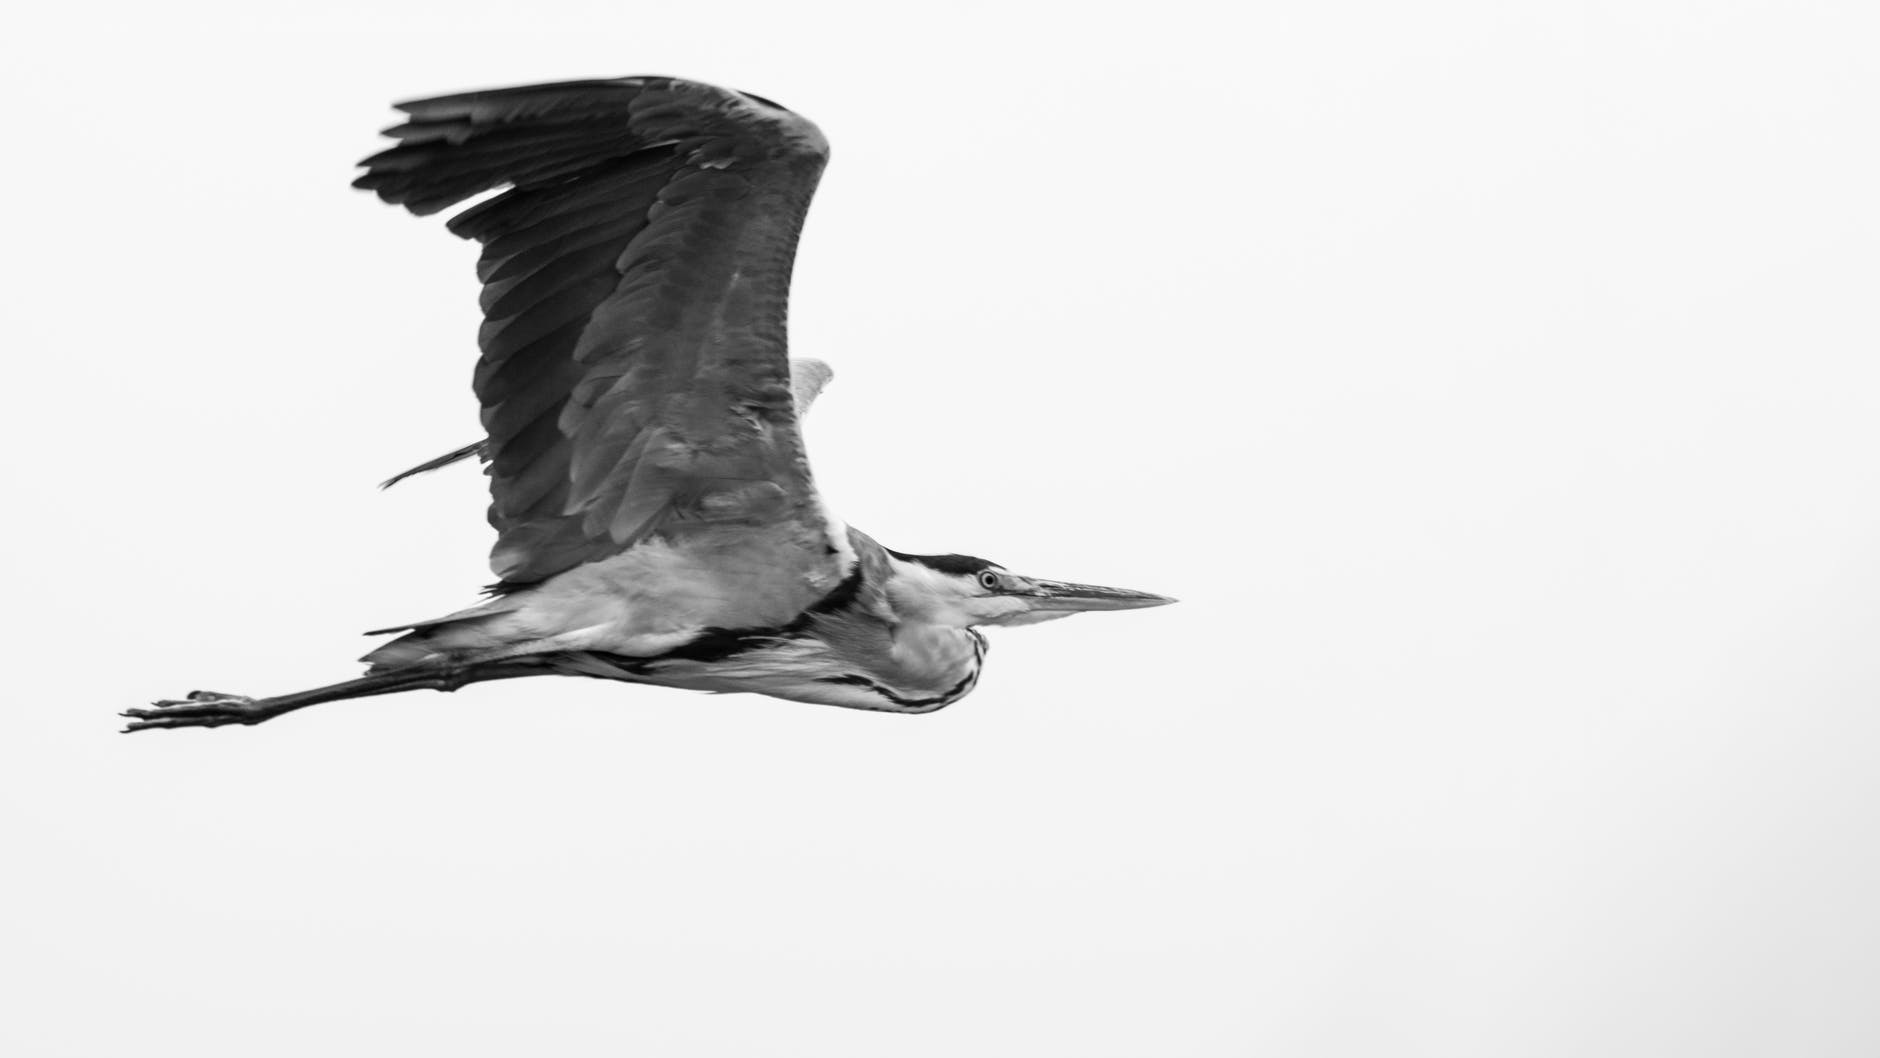 grayscale photography of flying bird on air